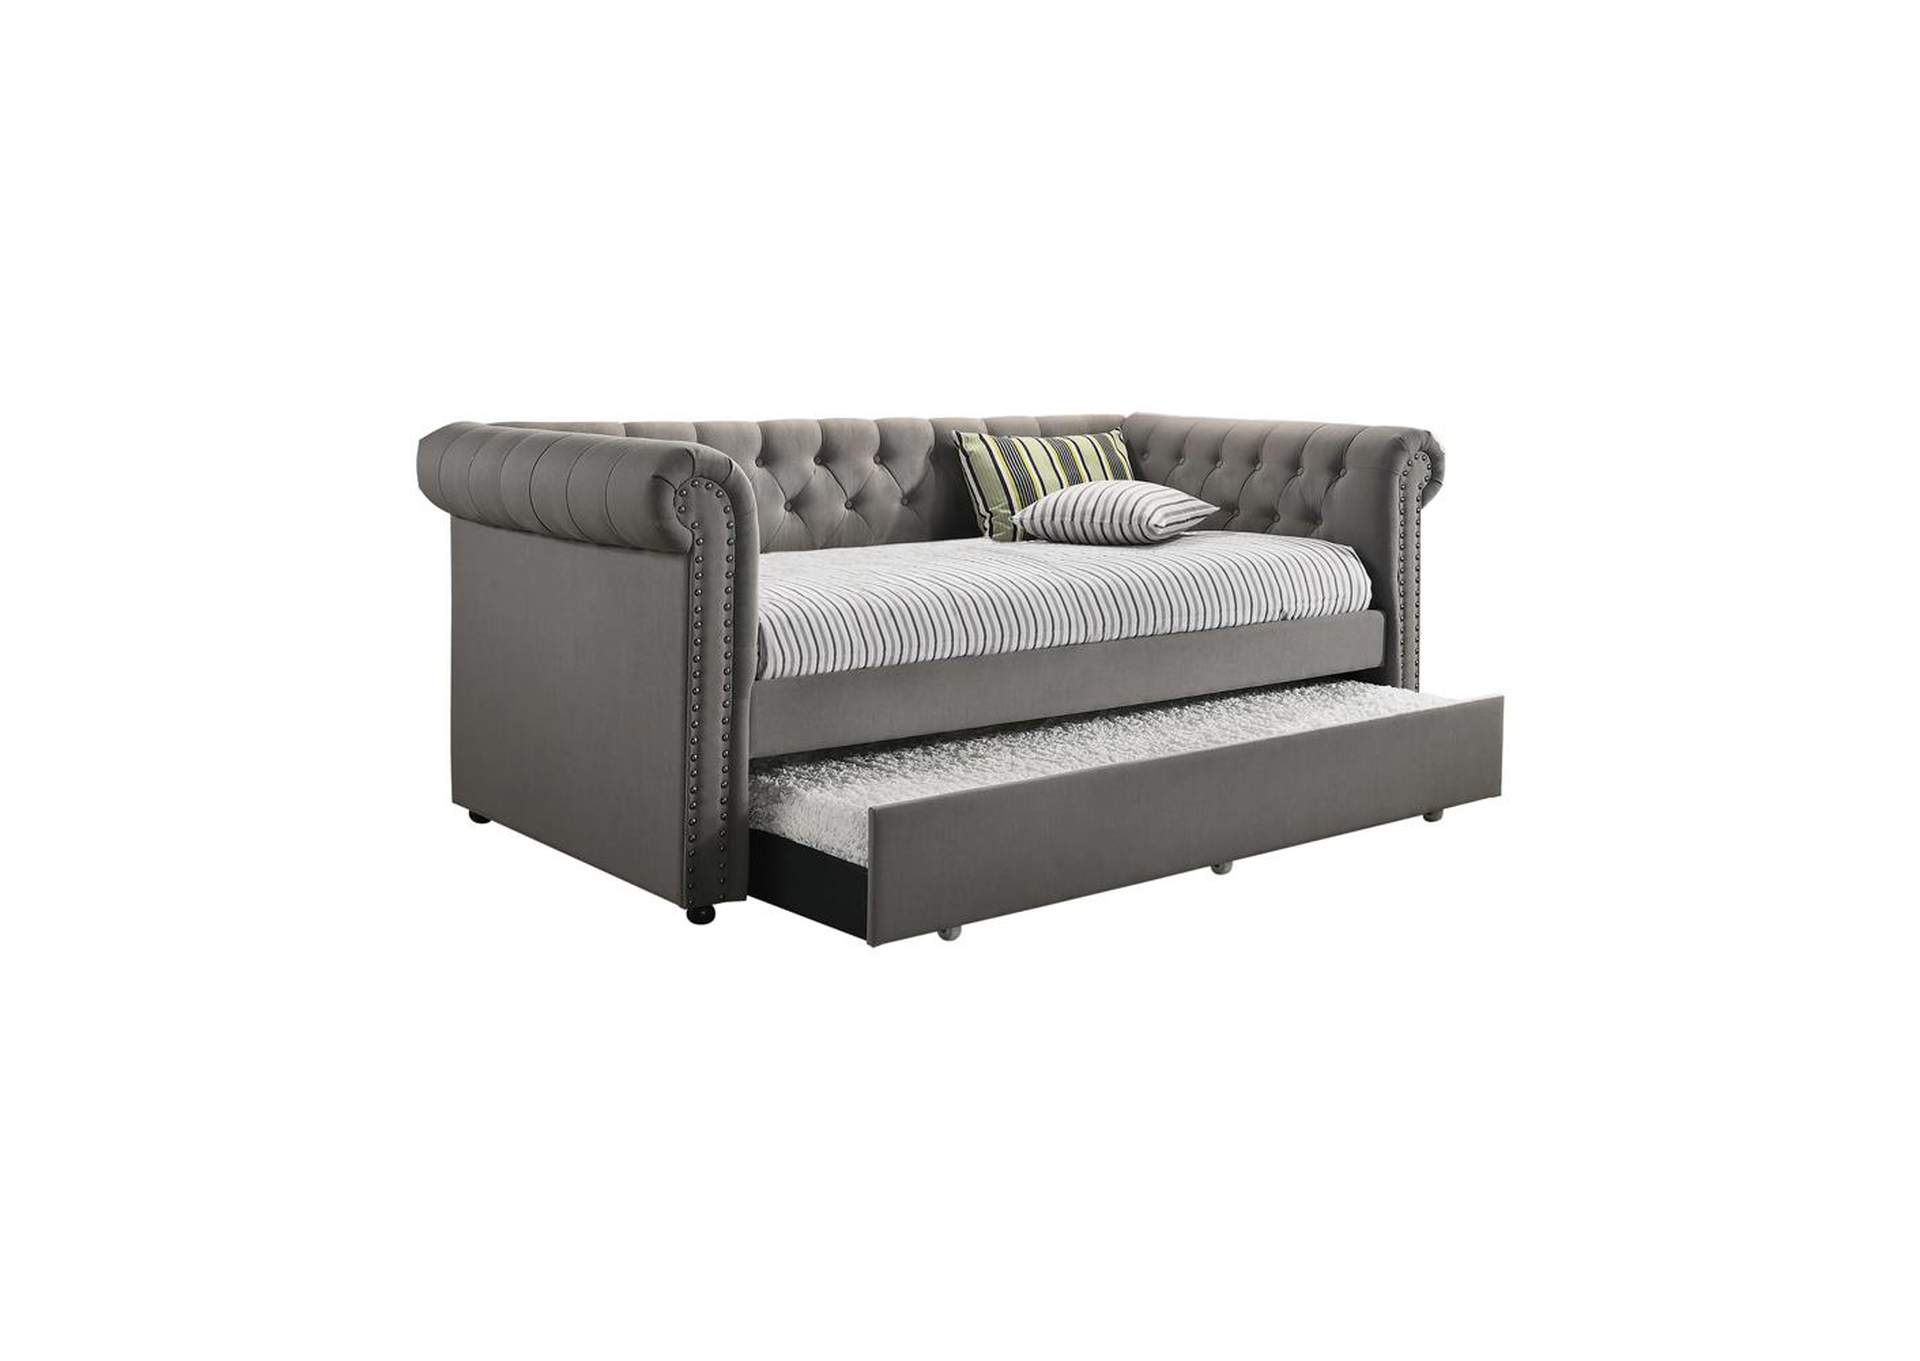 Ironside Gray Kepner Grey Chesterfield Daybed